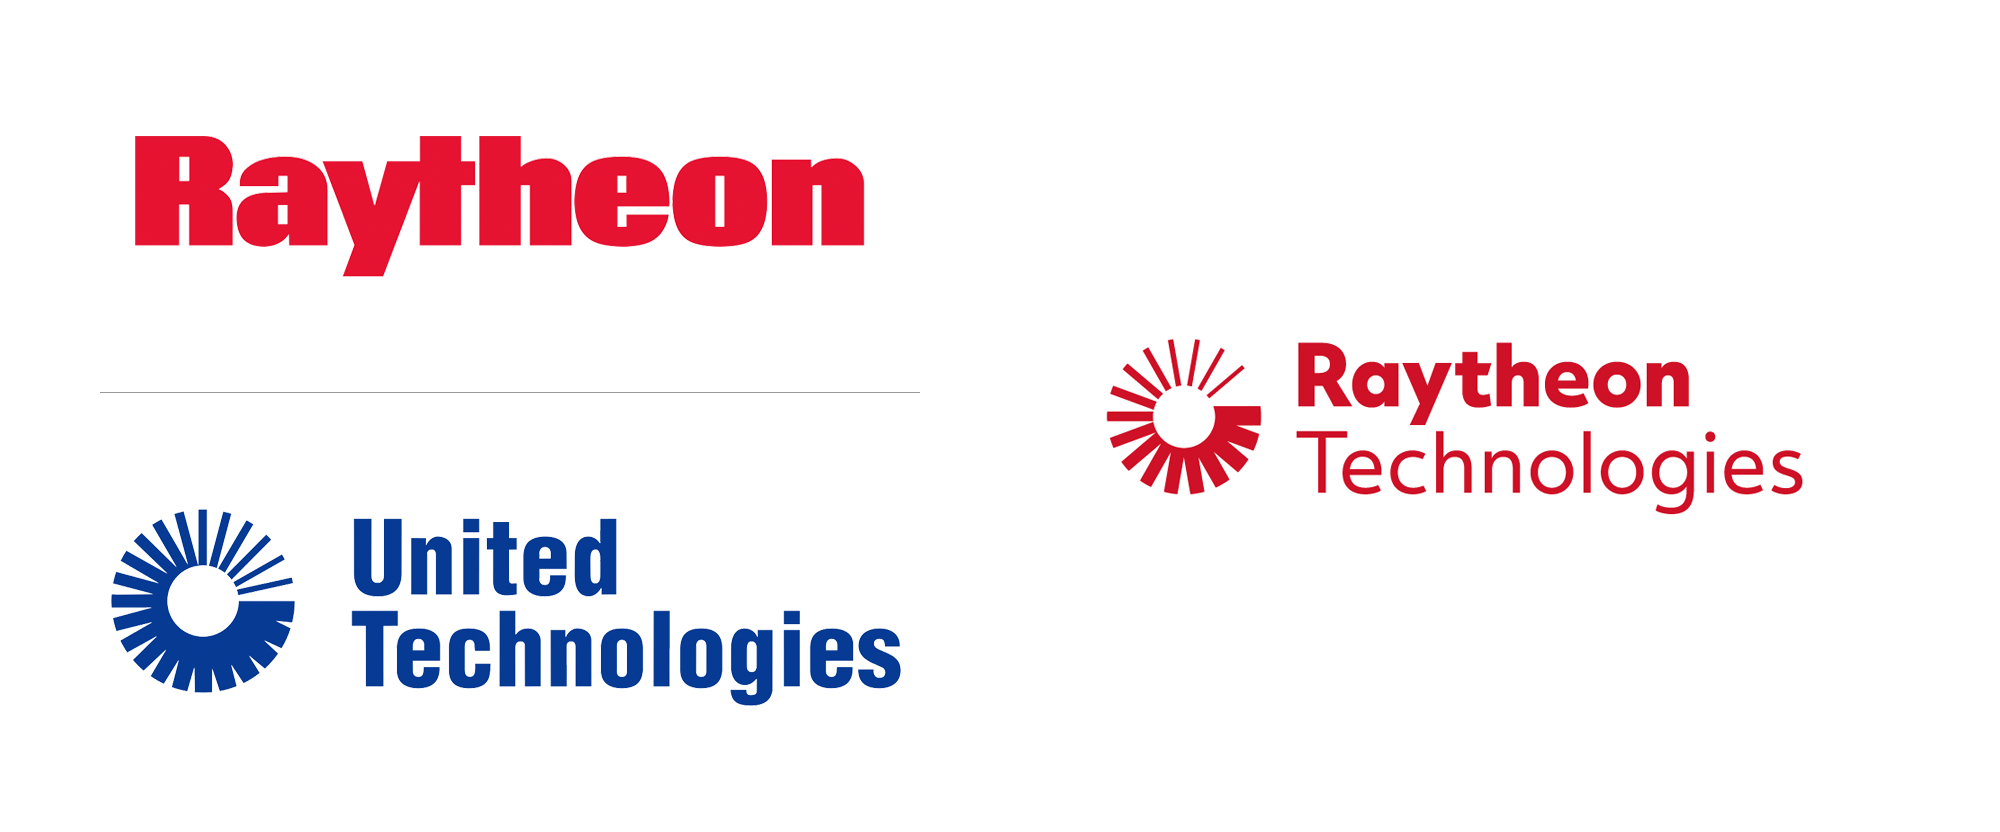 New Name and Logo for Raytheon Technologies